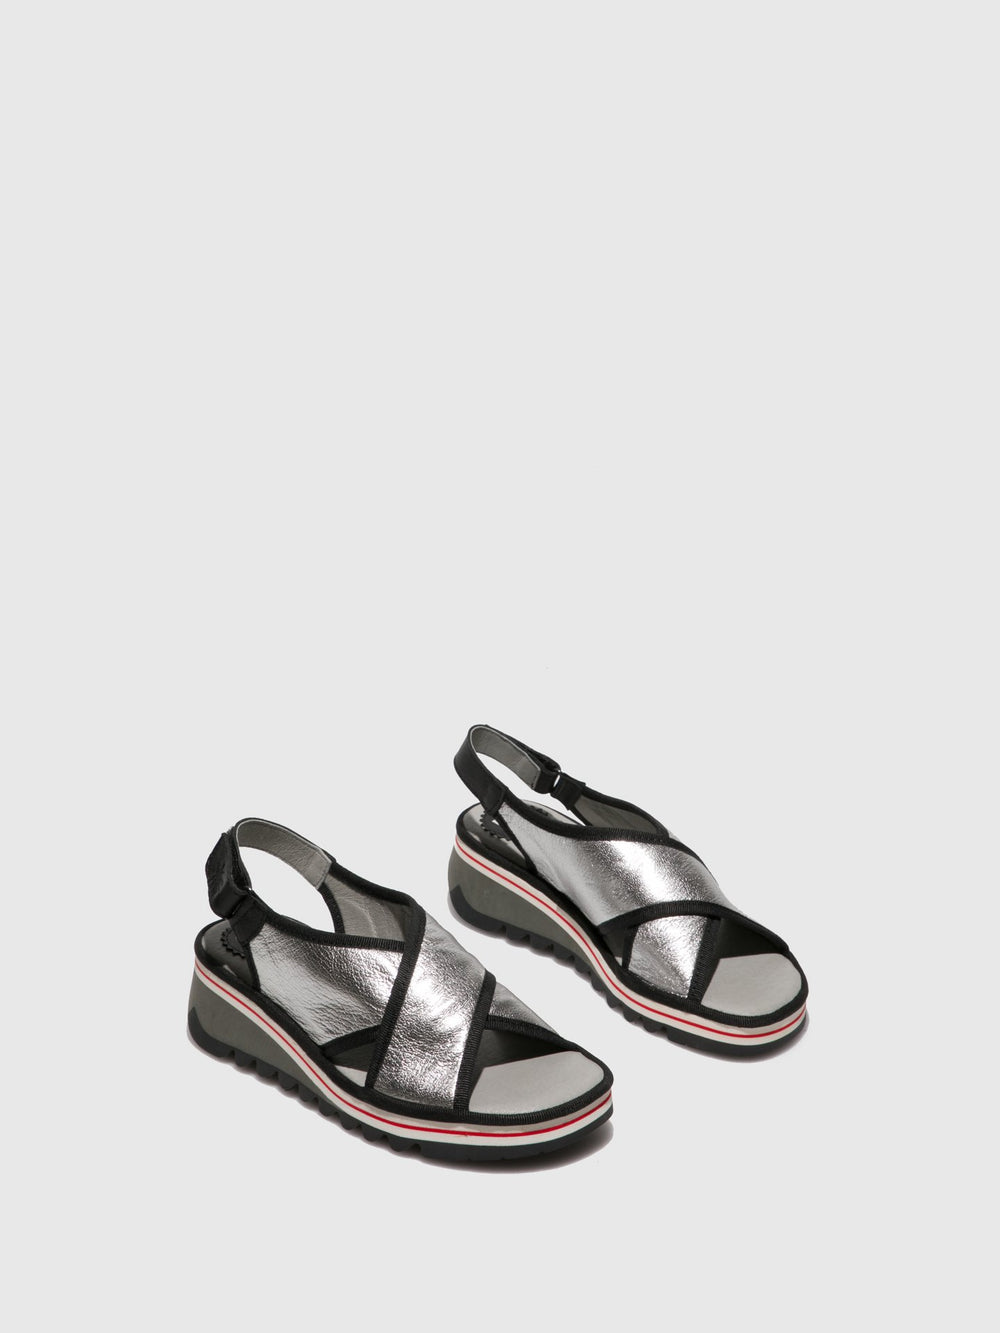 Crossover Sandals TANO133FLY SILVER (BLACK)